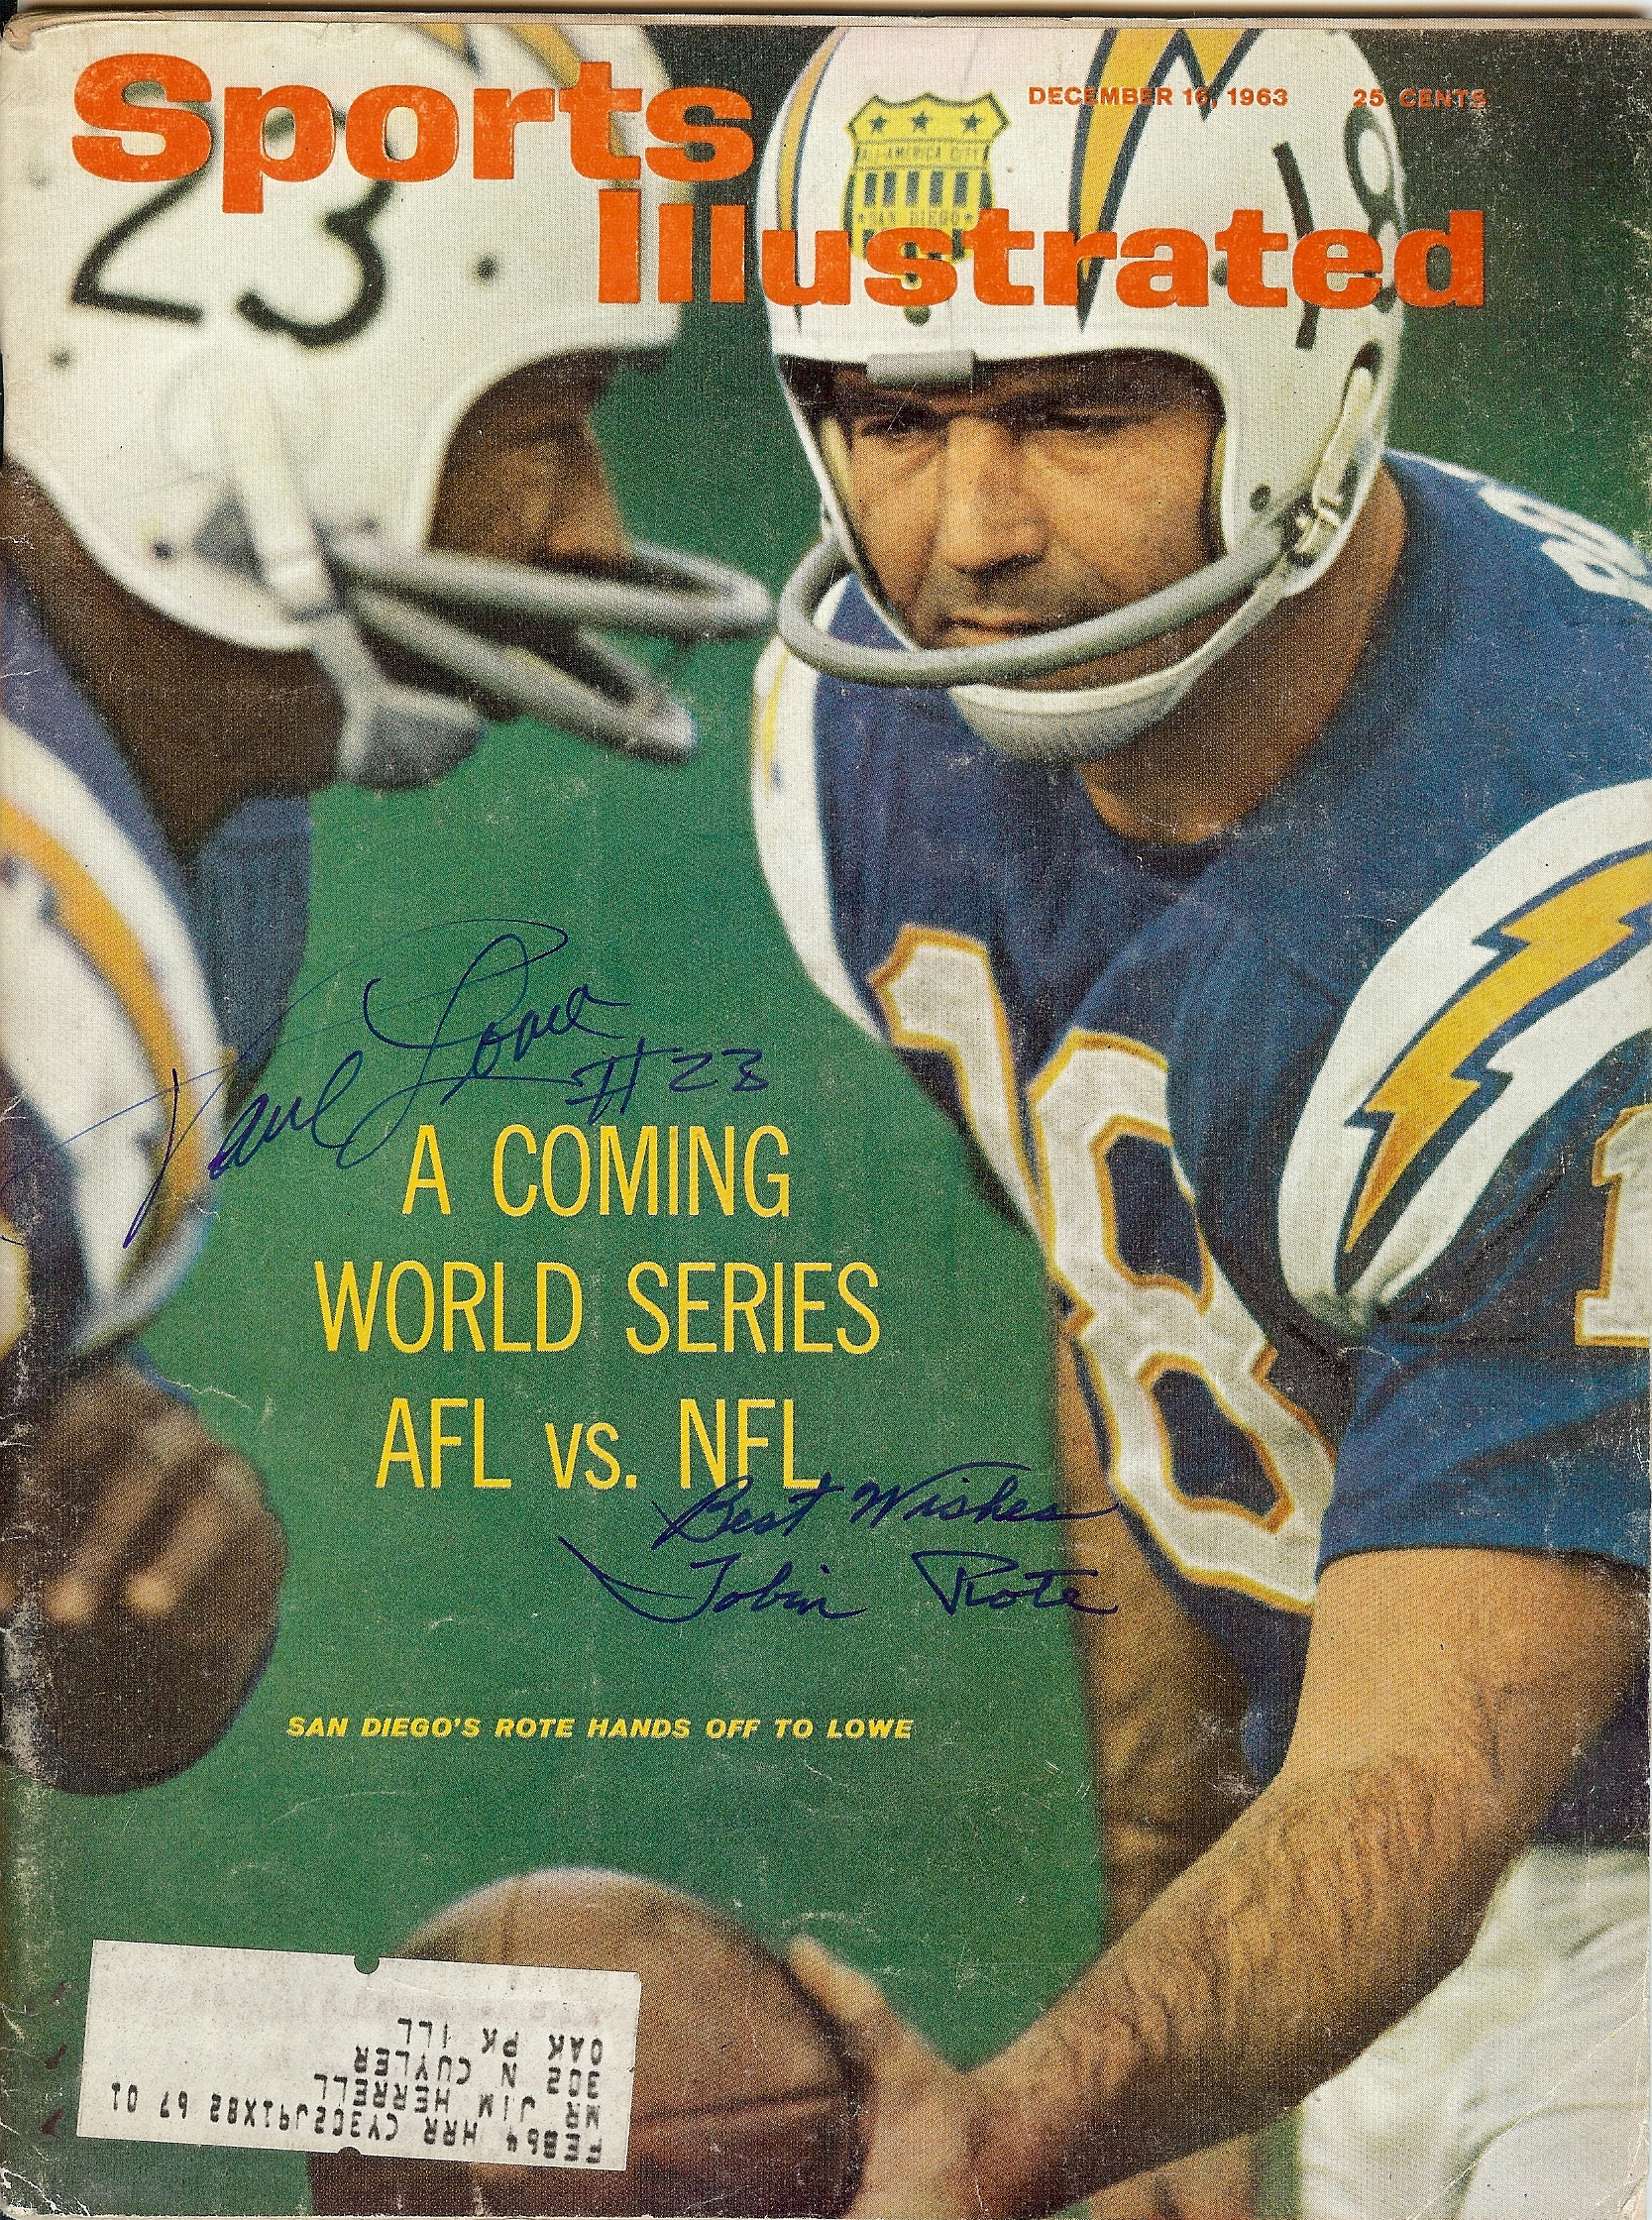 1963 sports illustrated